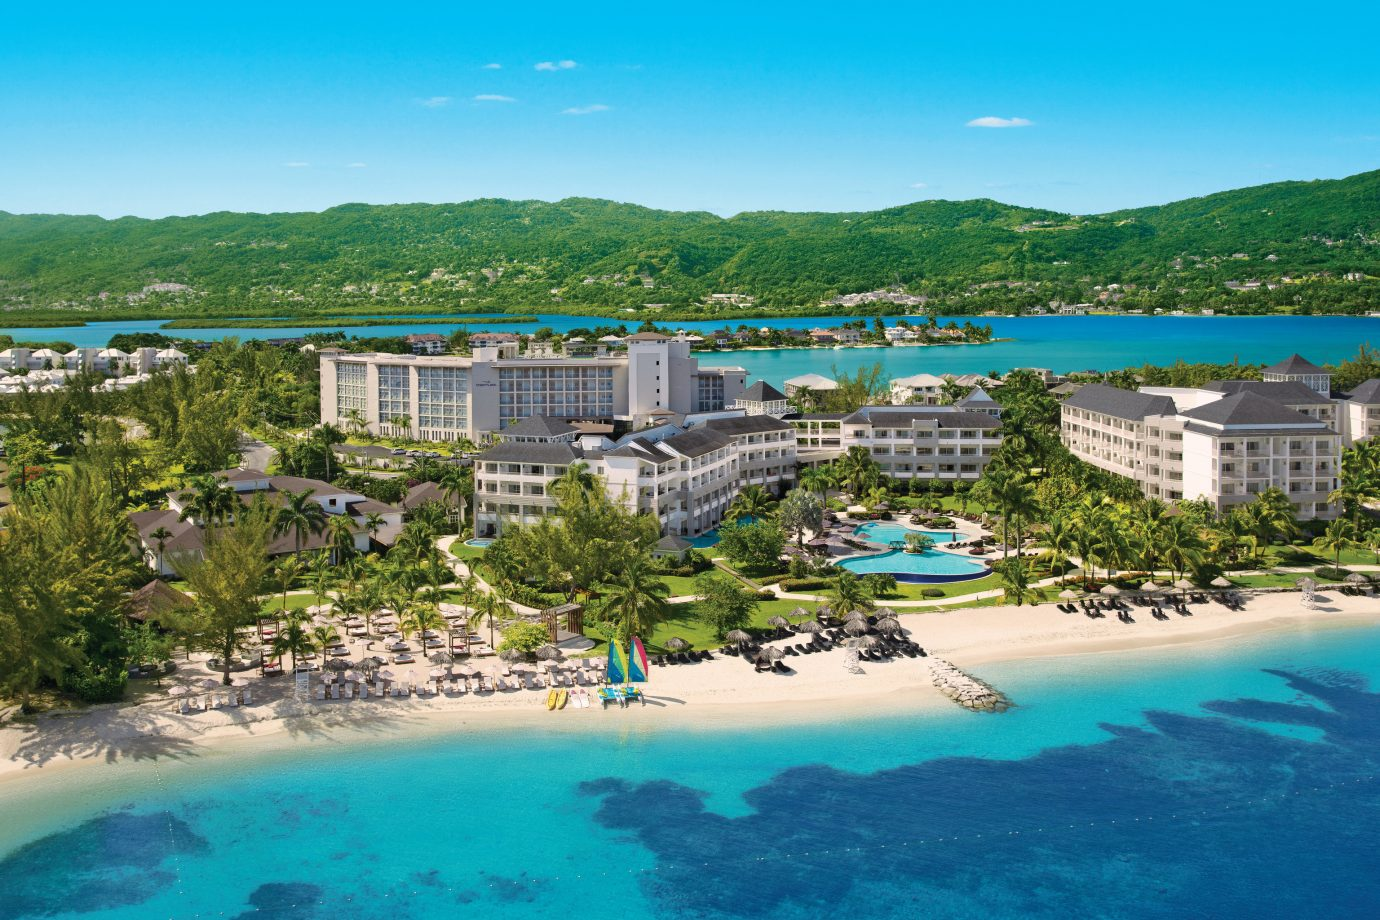 7 Best AllInclusive Caribbean Resorts for Singles